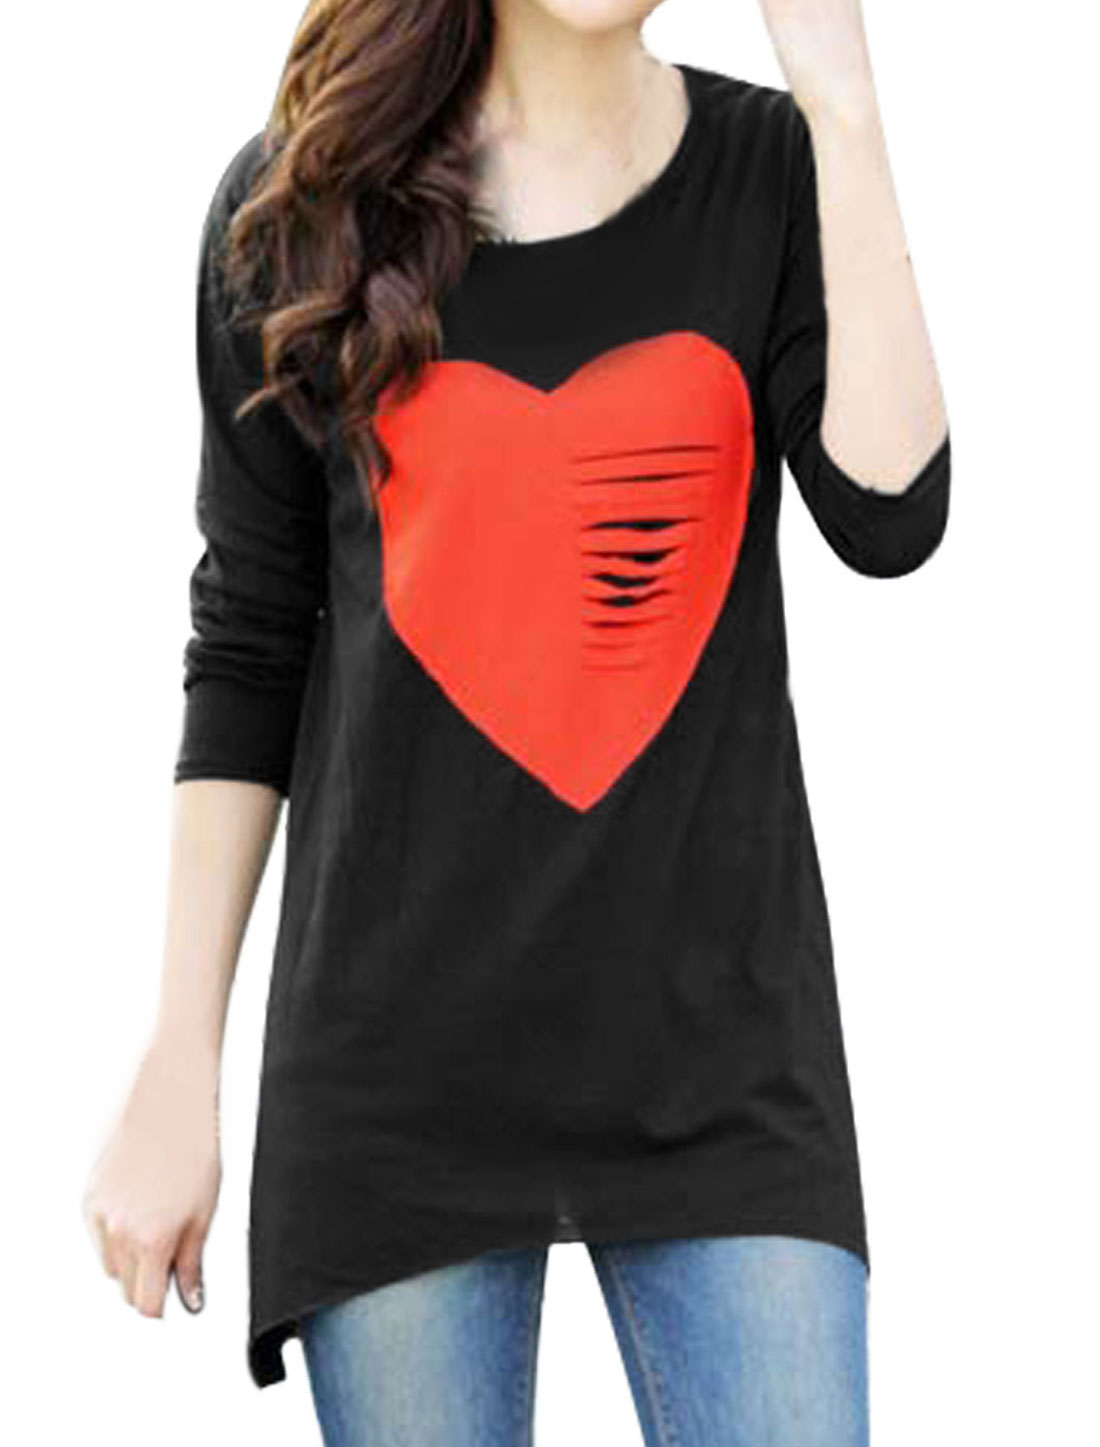 Women Heart Applique Long Sleeves Casual Tunic Shirt Black S